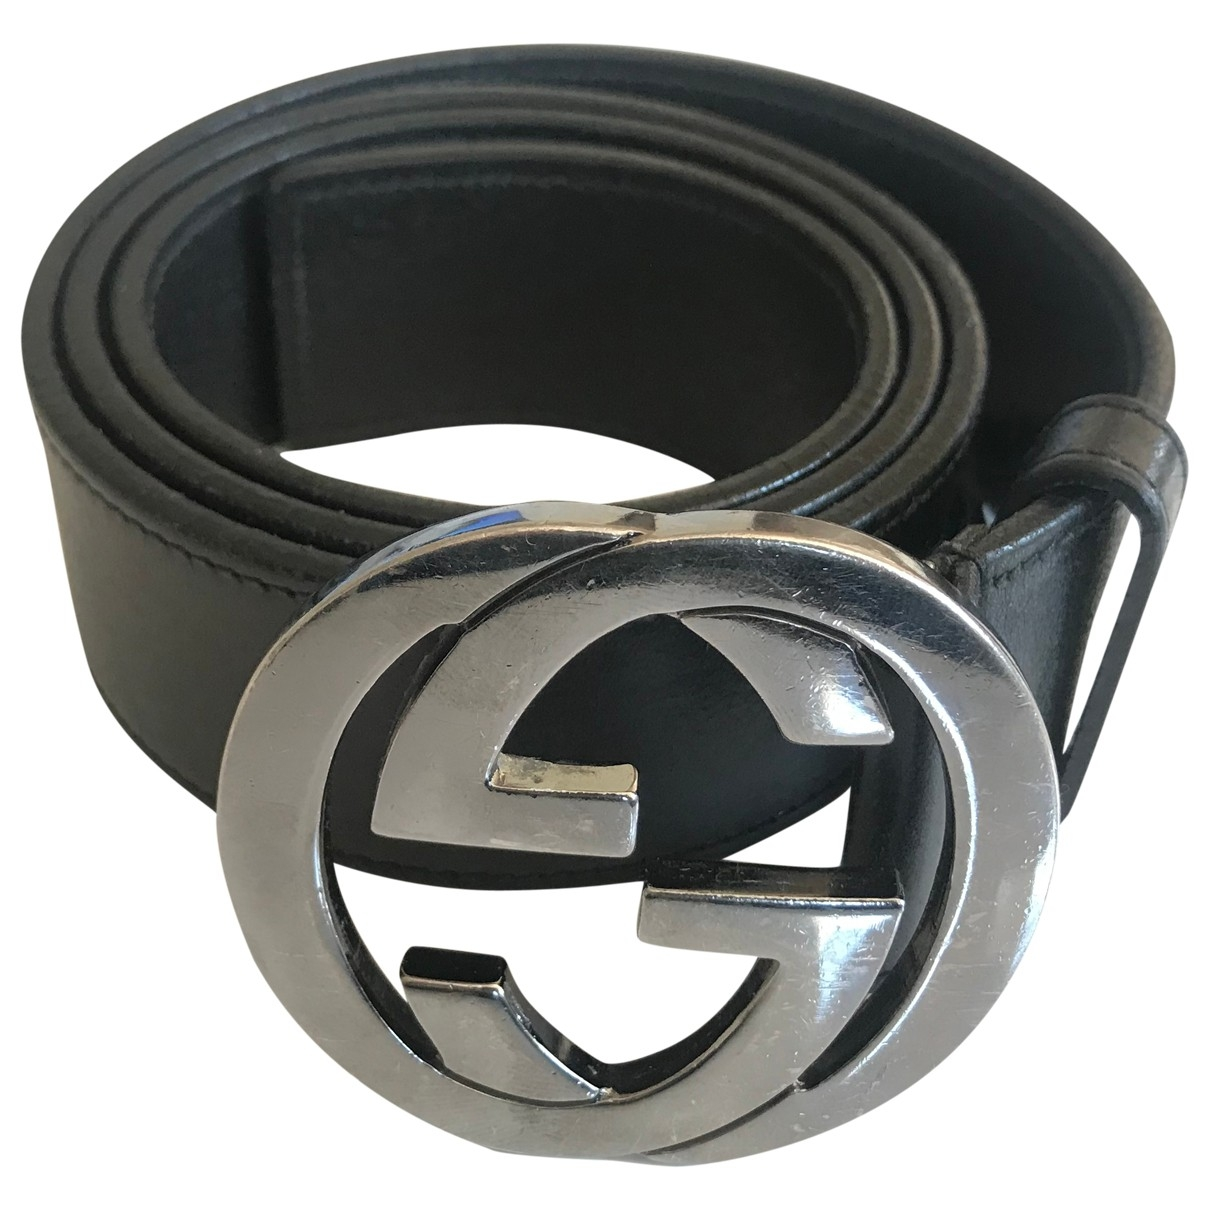 Gucci Interlocking Buckle Black Leather belt for Women 85 cm